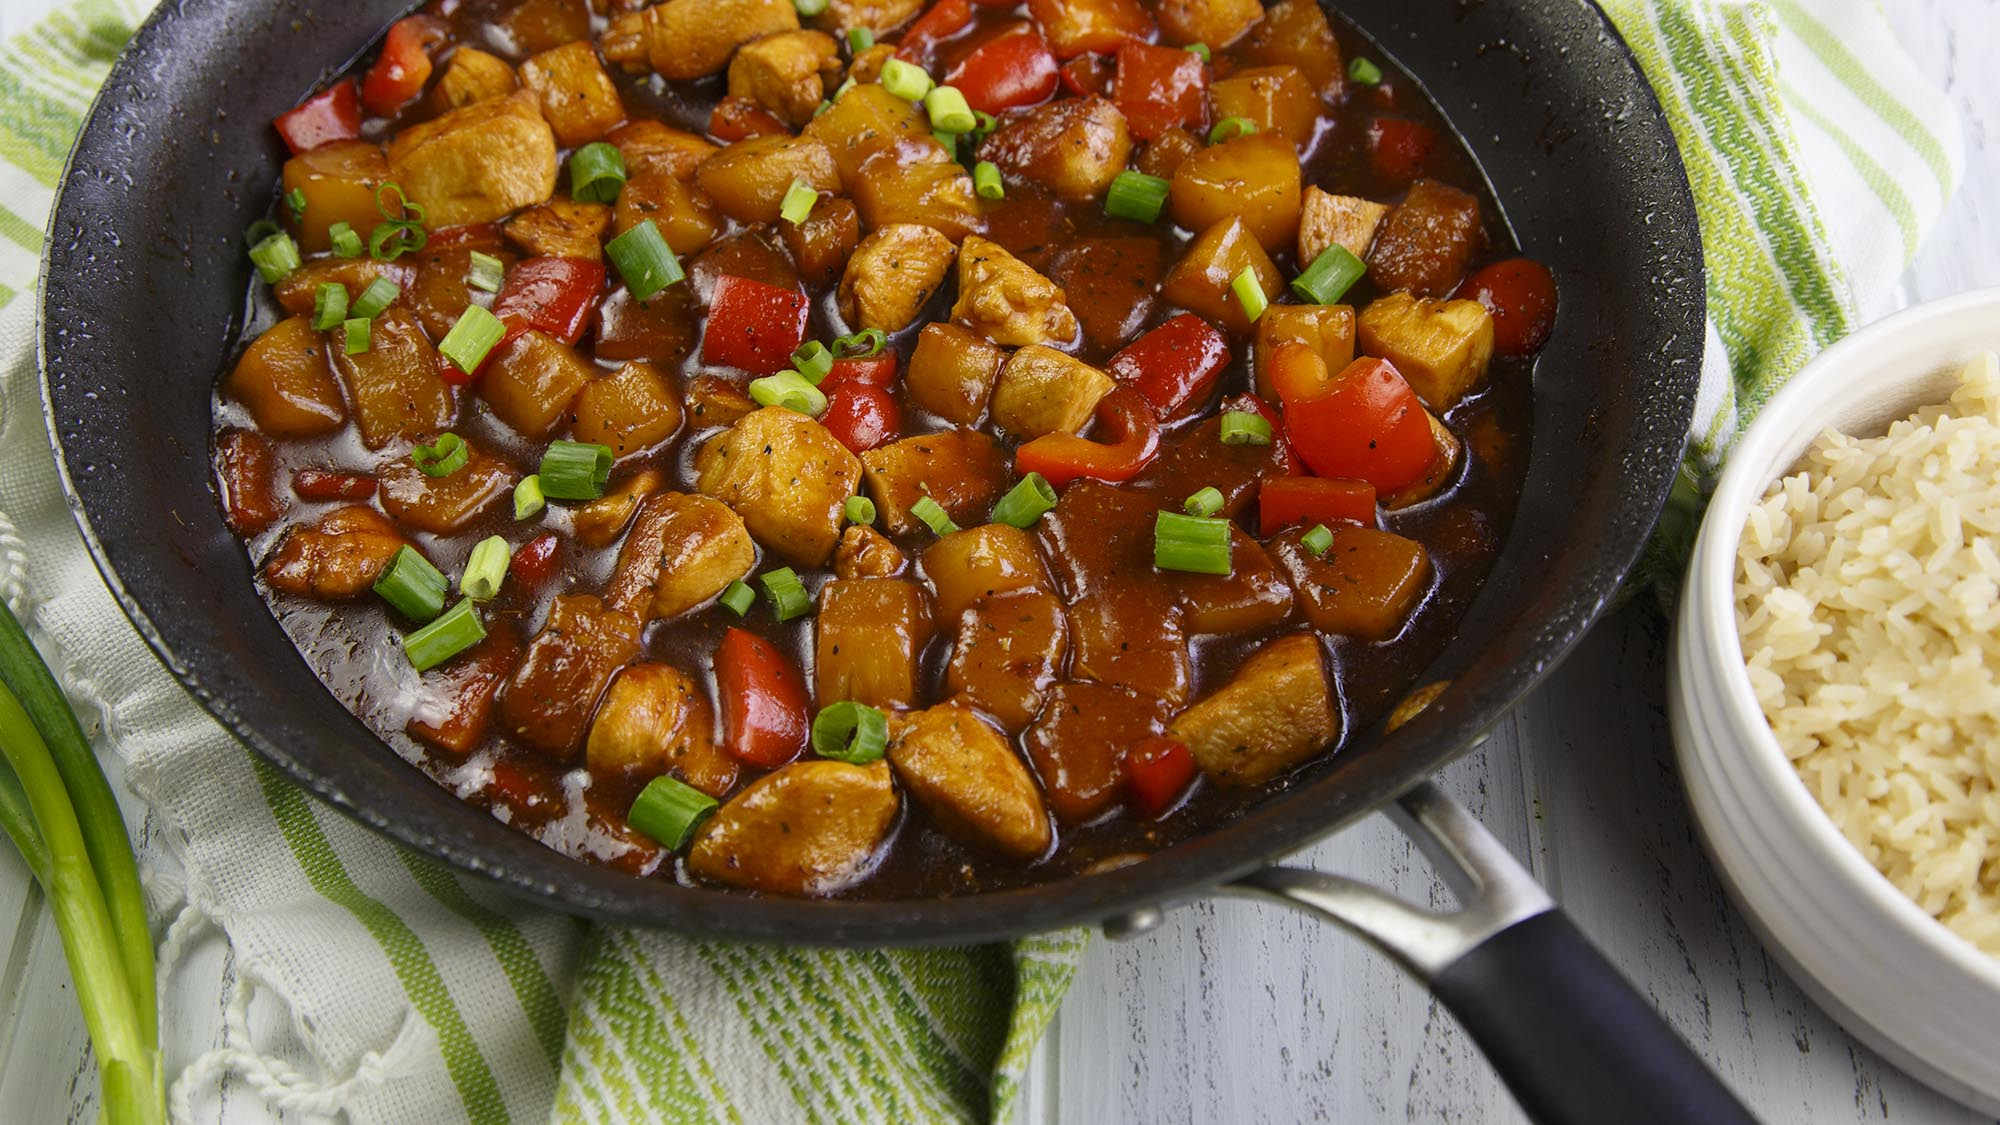 pineapple_chicken_stir_fry_2000x1125.jpg